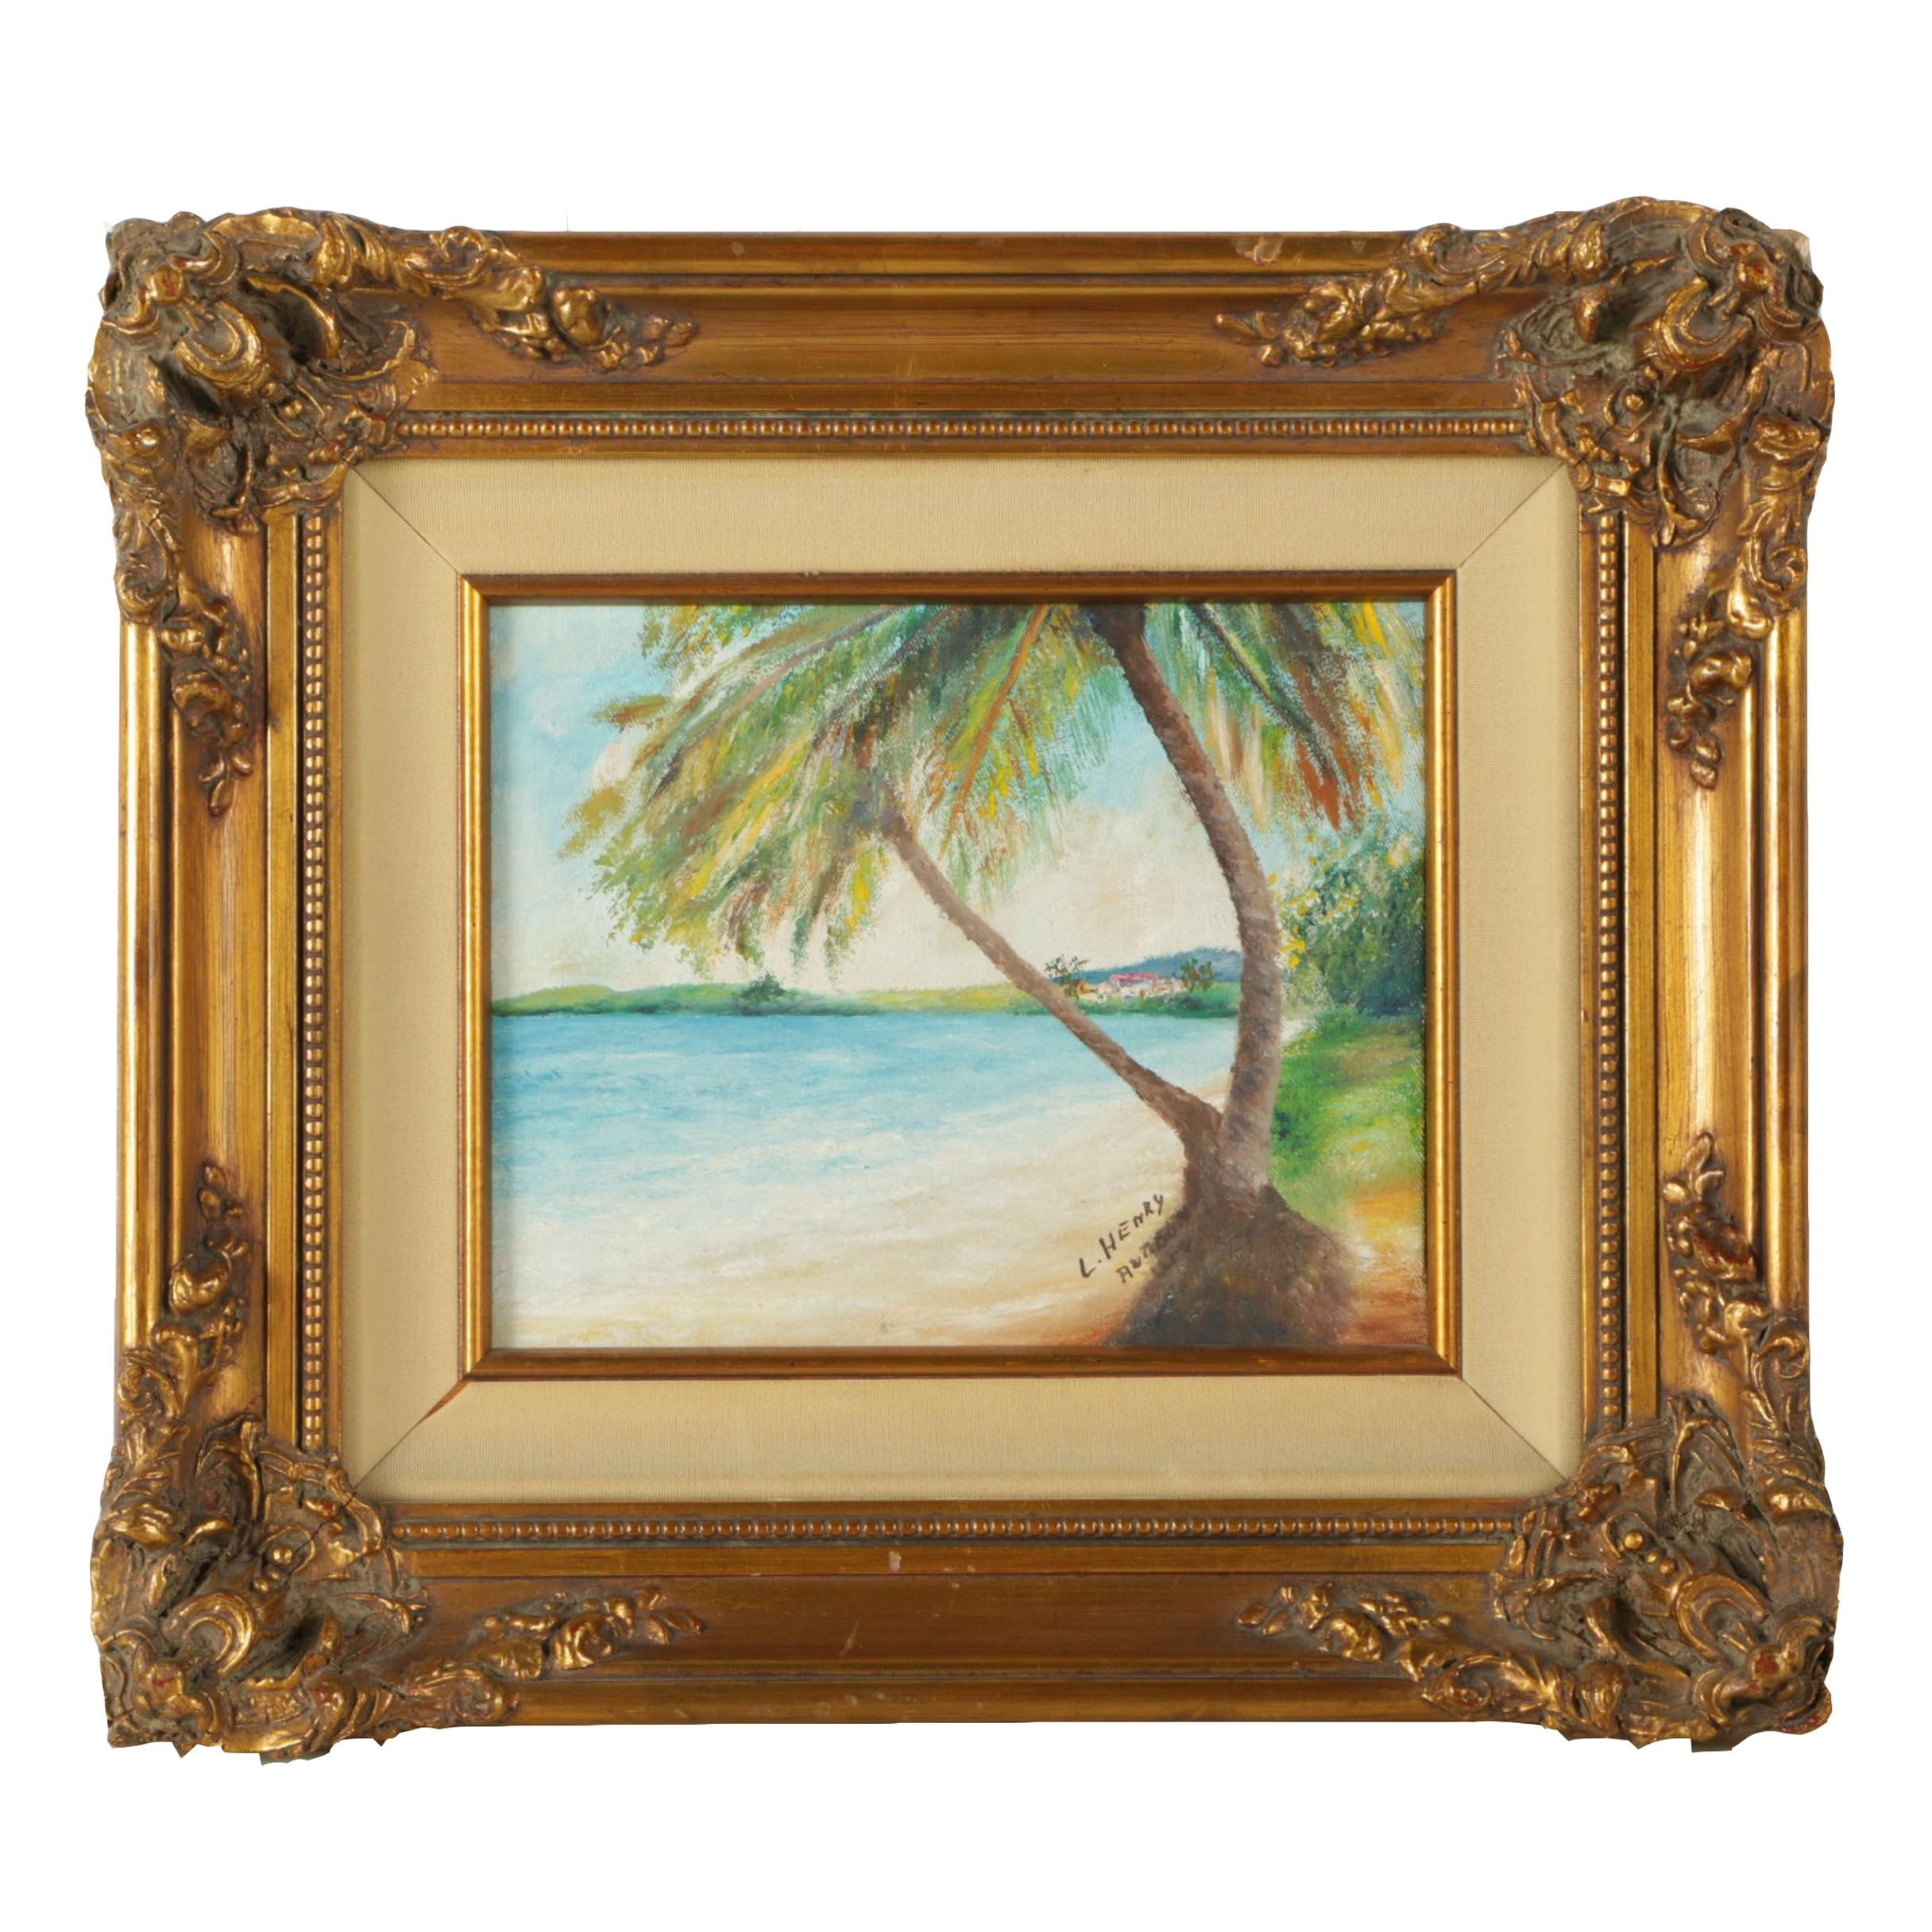 L. Henry Oil Painting of a Tropical Beach Scene